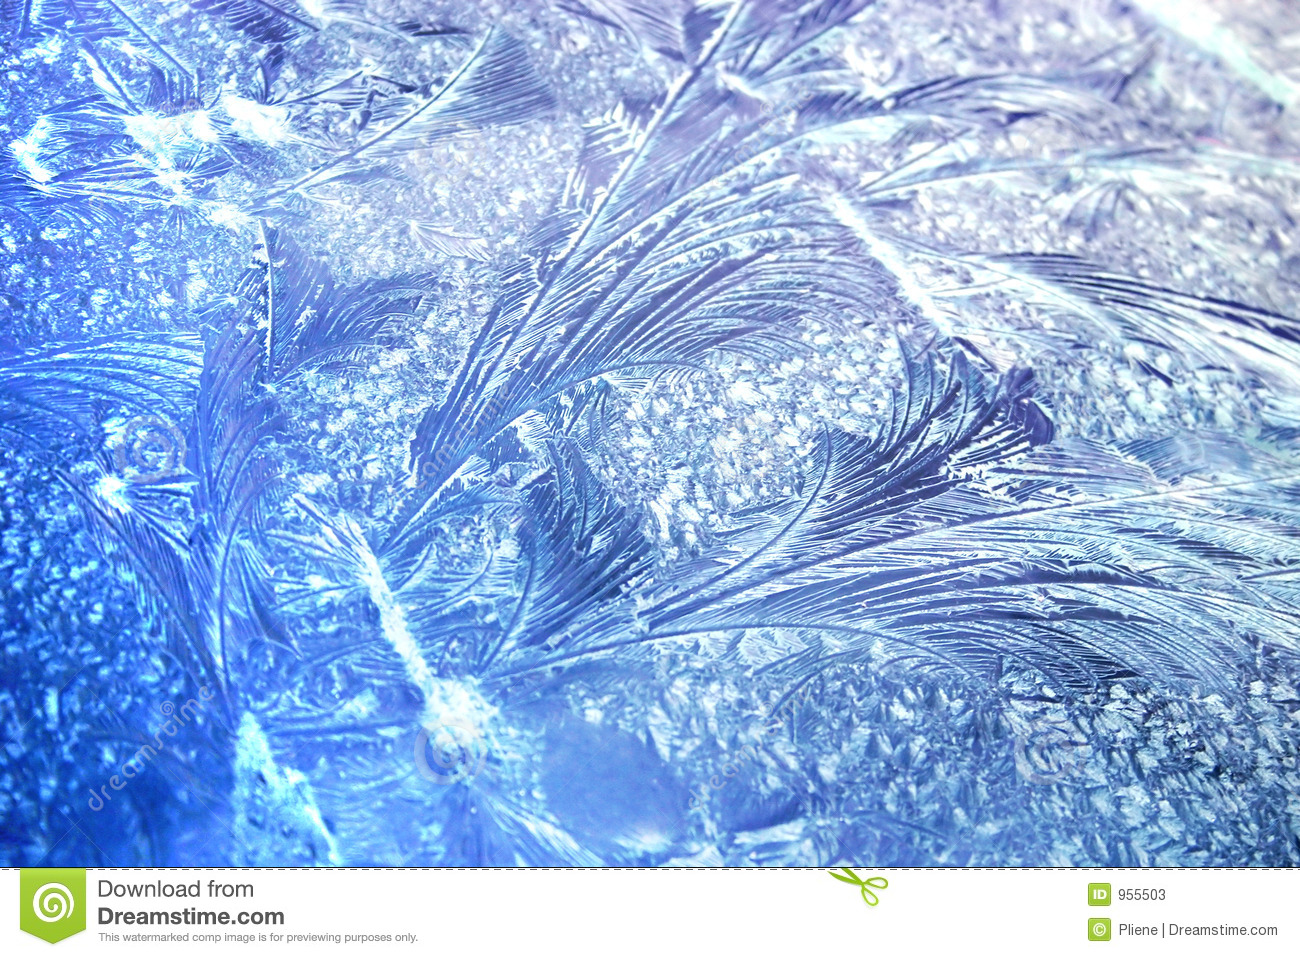 Ice Structure Stock Photos - Image: 955503